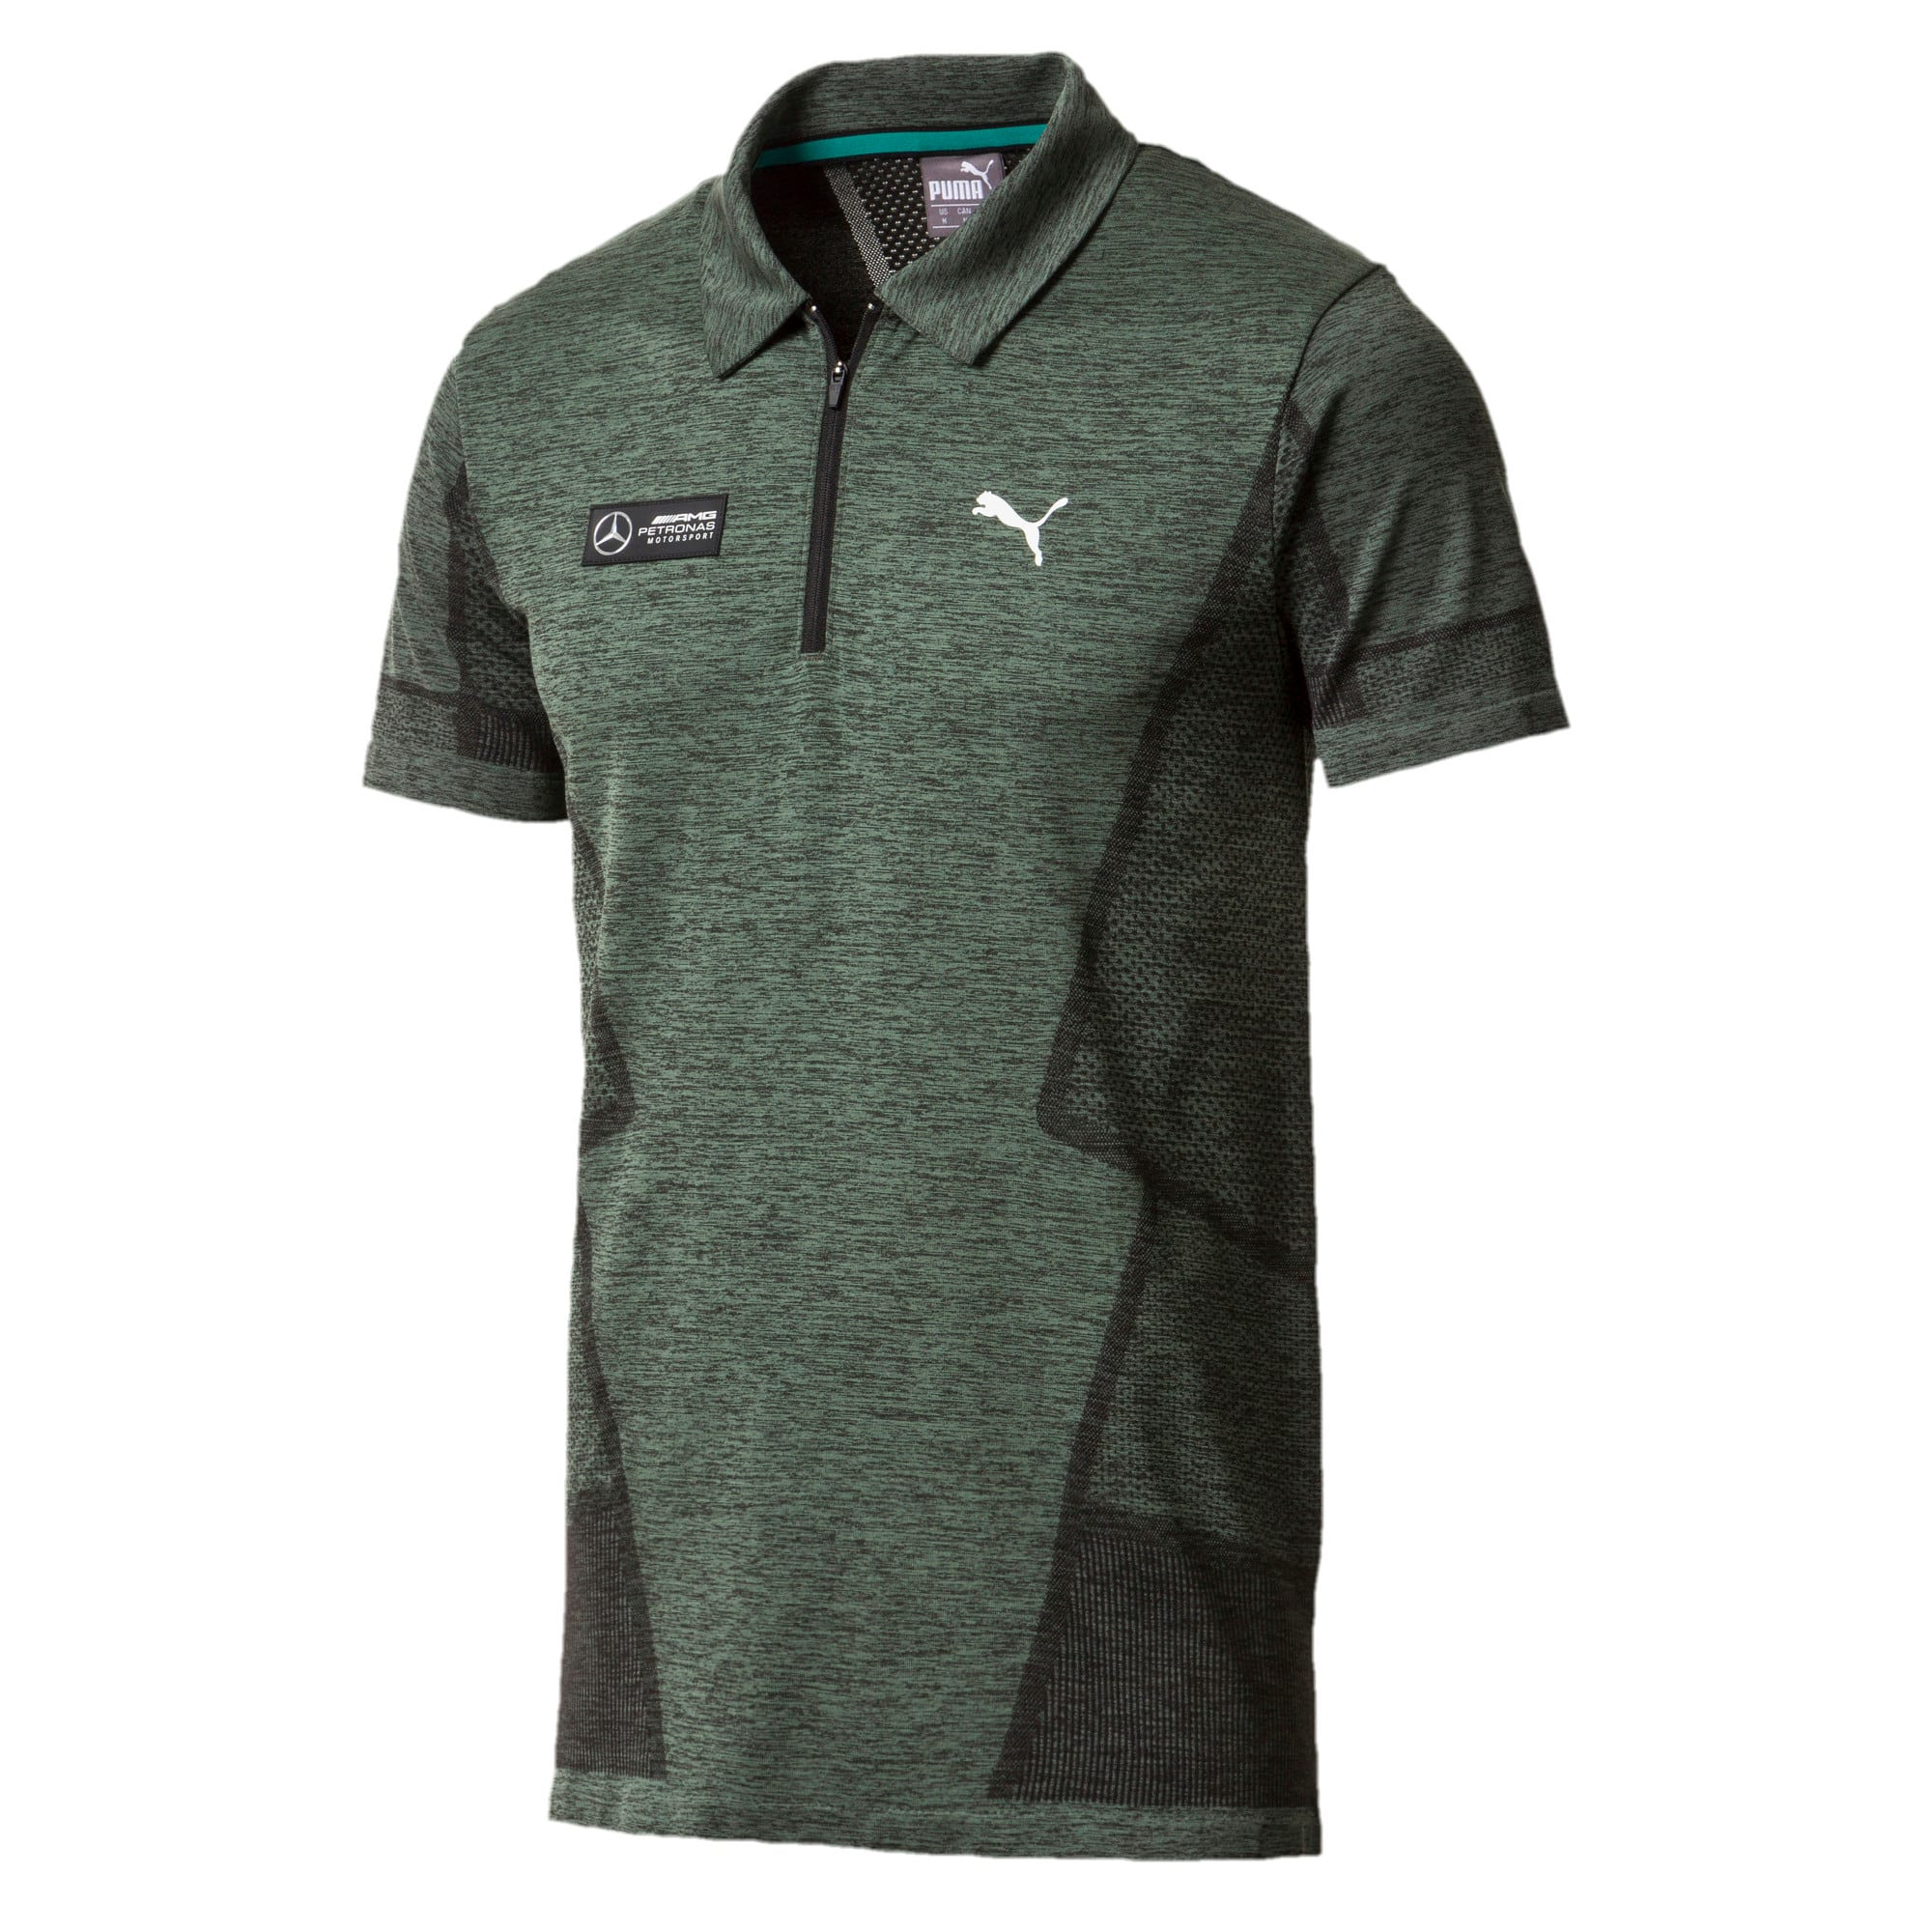 Thumbnail 1 of MERCEDES AMG PETRONAS Men's evoKNIT Polo, Laurel Wreath, medium-IND